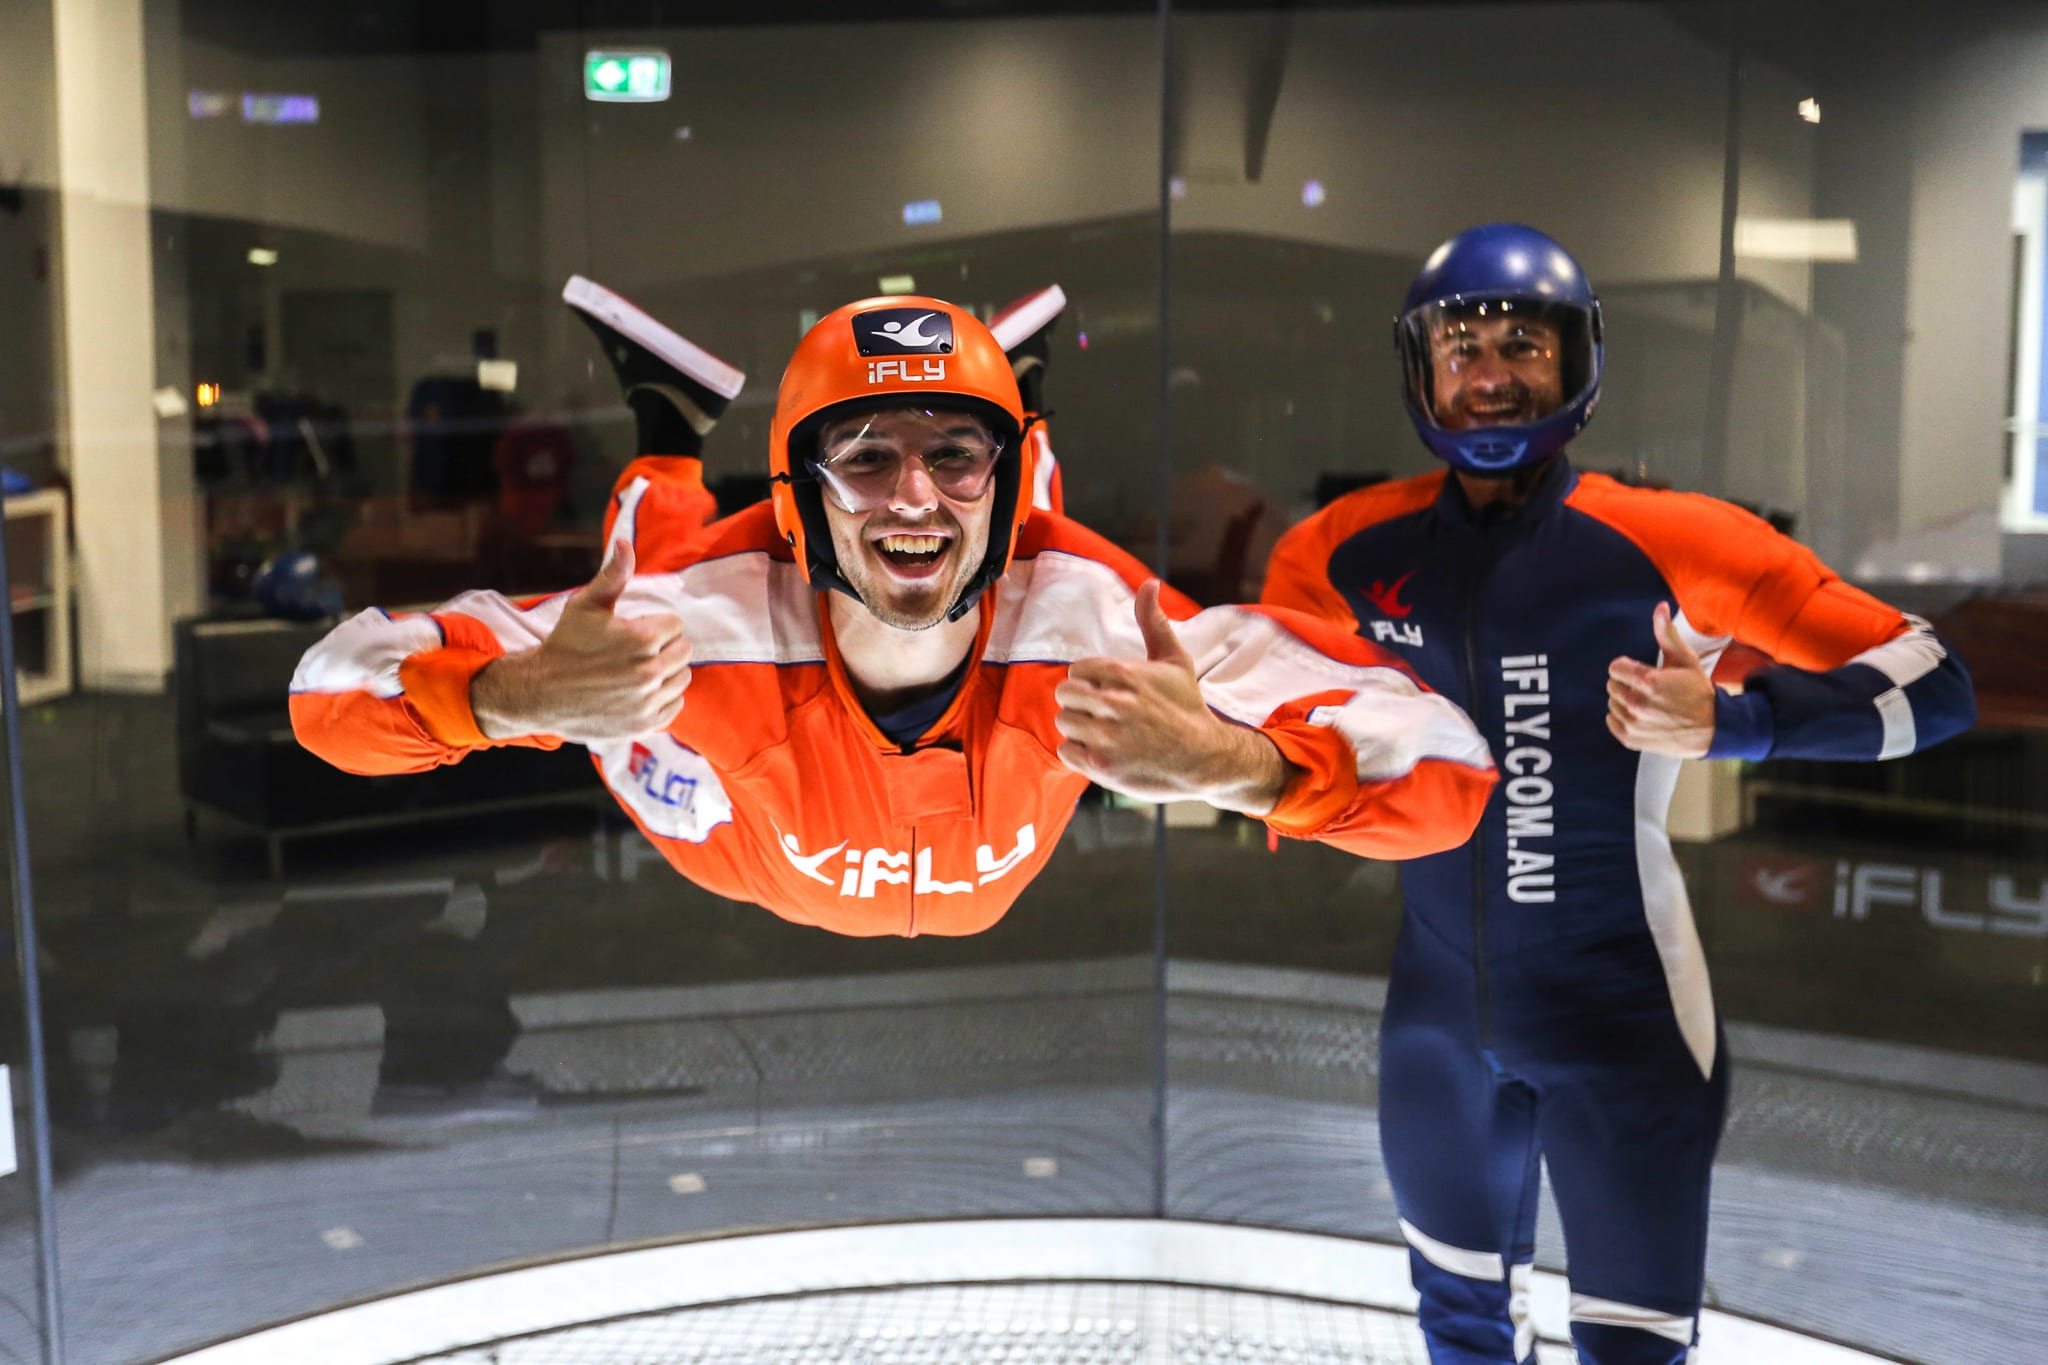 Indoor Skydiving Sydney, iFLY Basic Package (2 Flights) - BUY ONE GET ONE FREE - Weekday